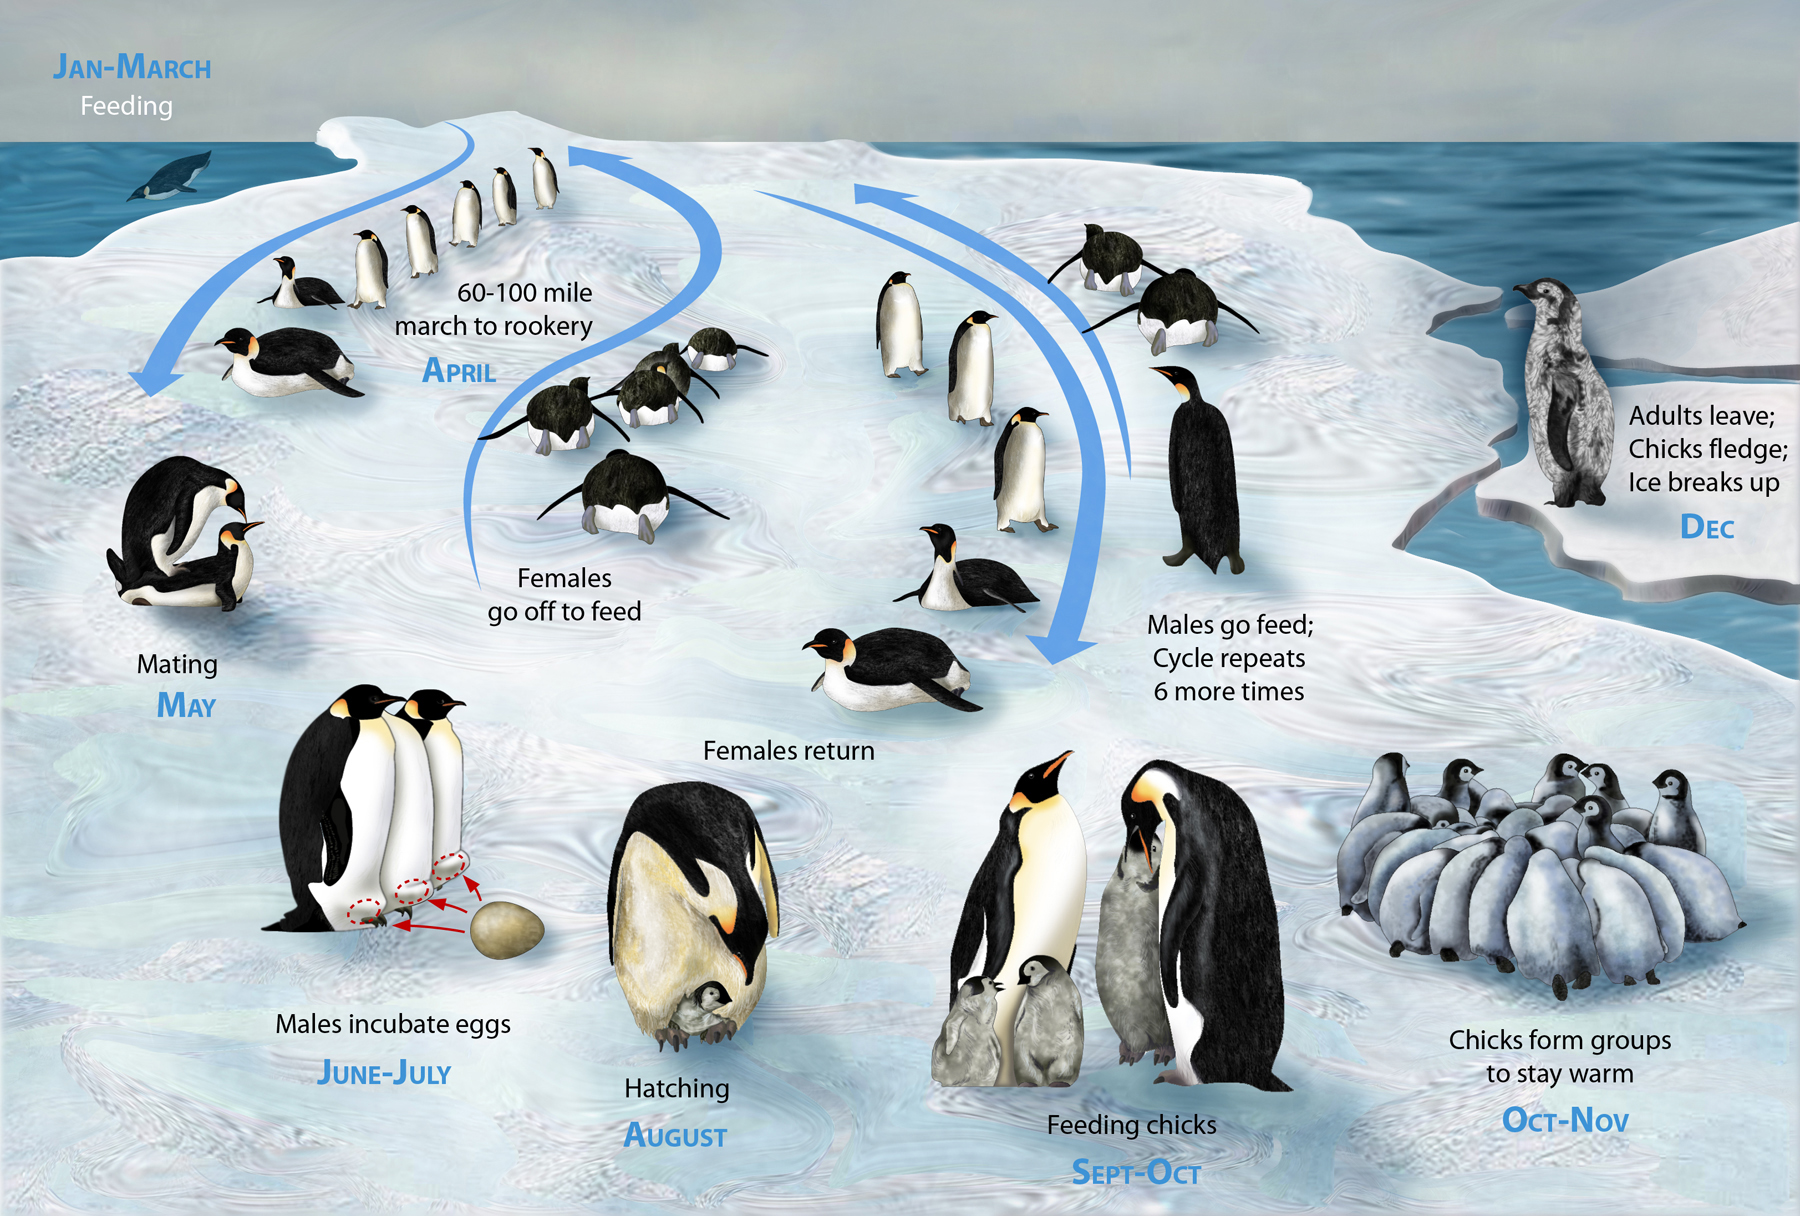 Life cycle of the Emperor Penguin